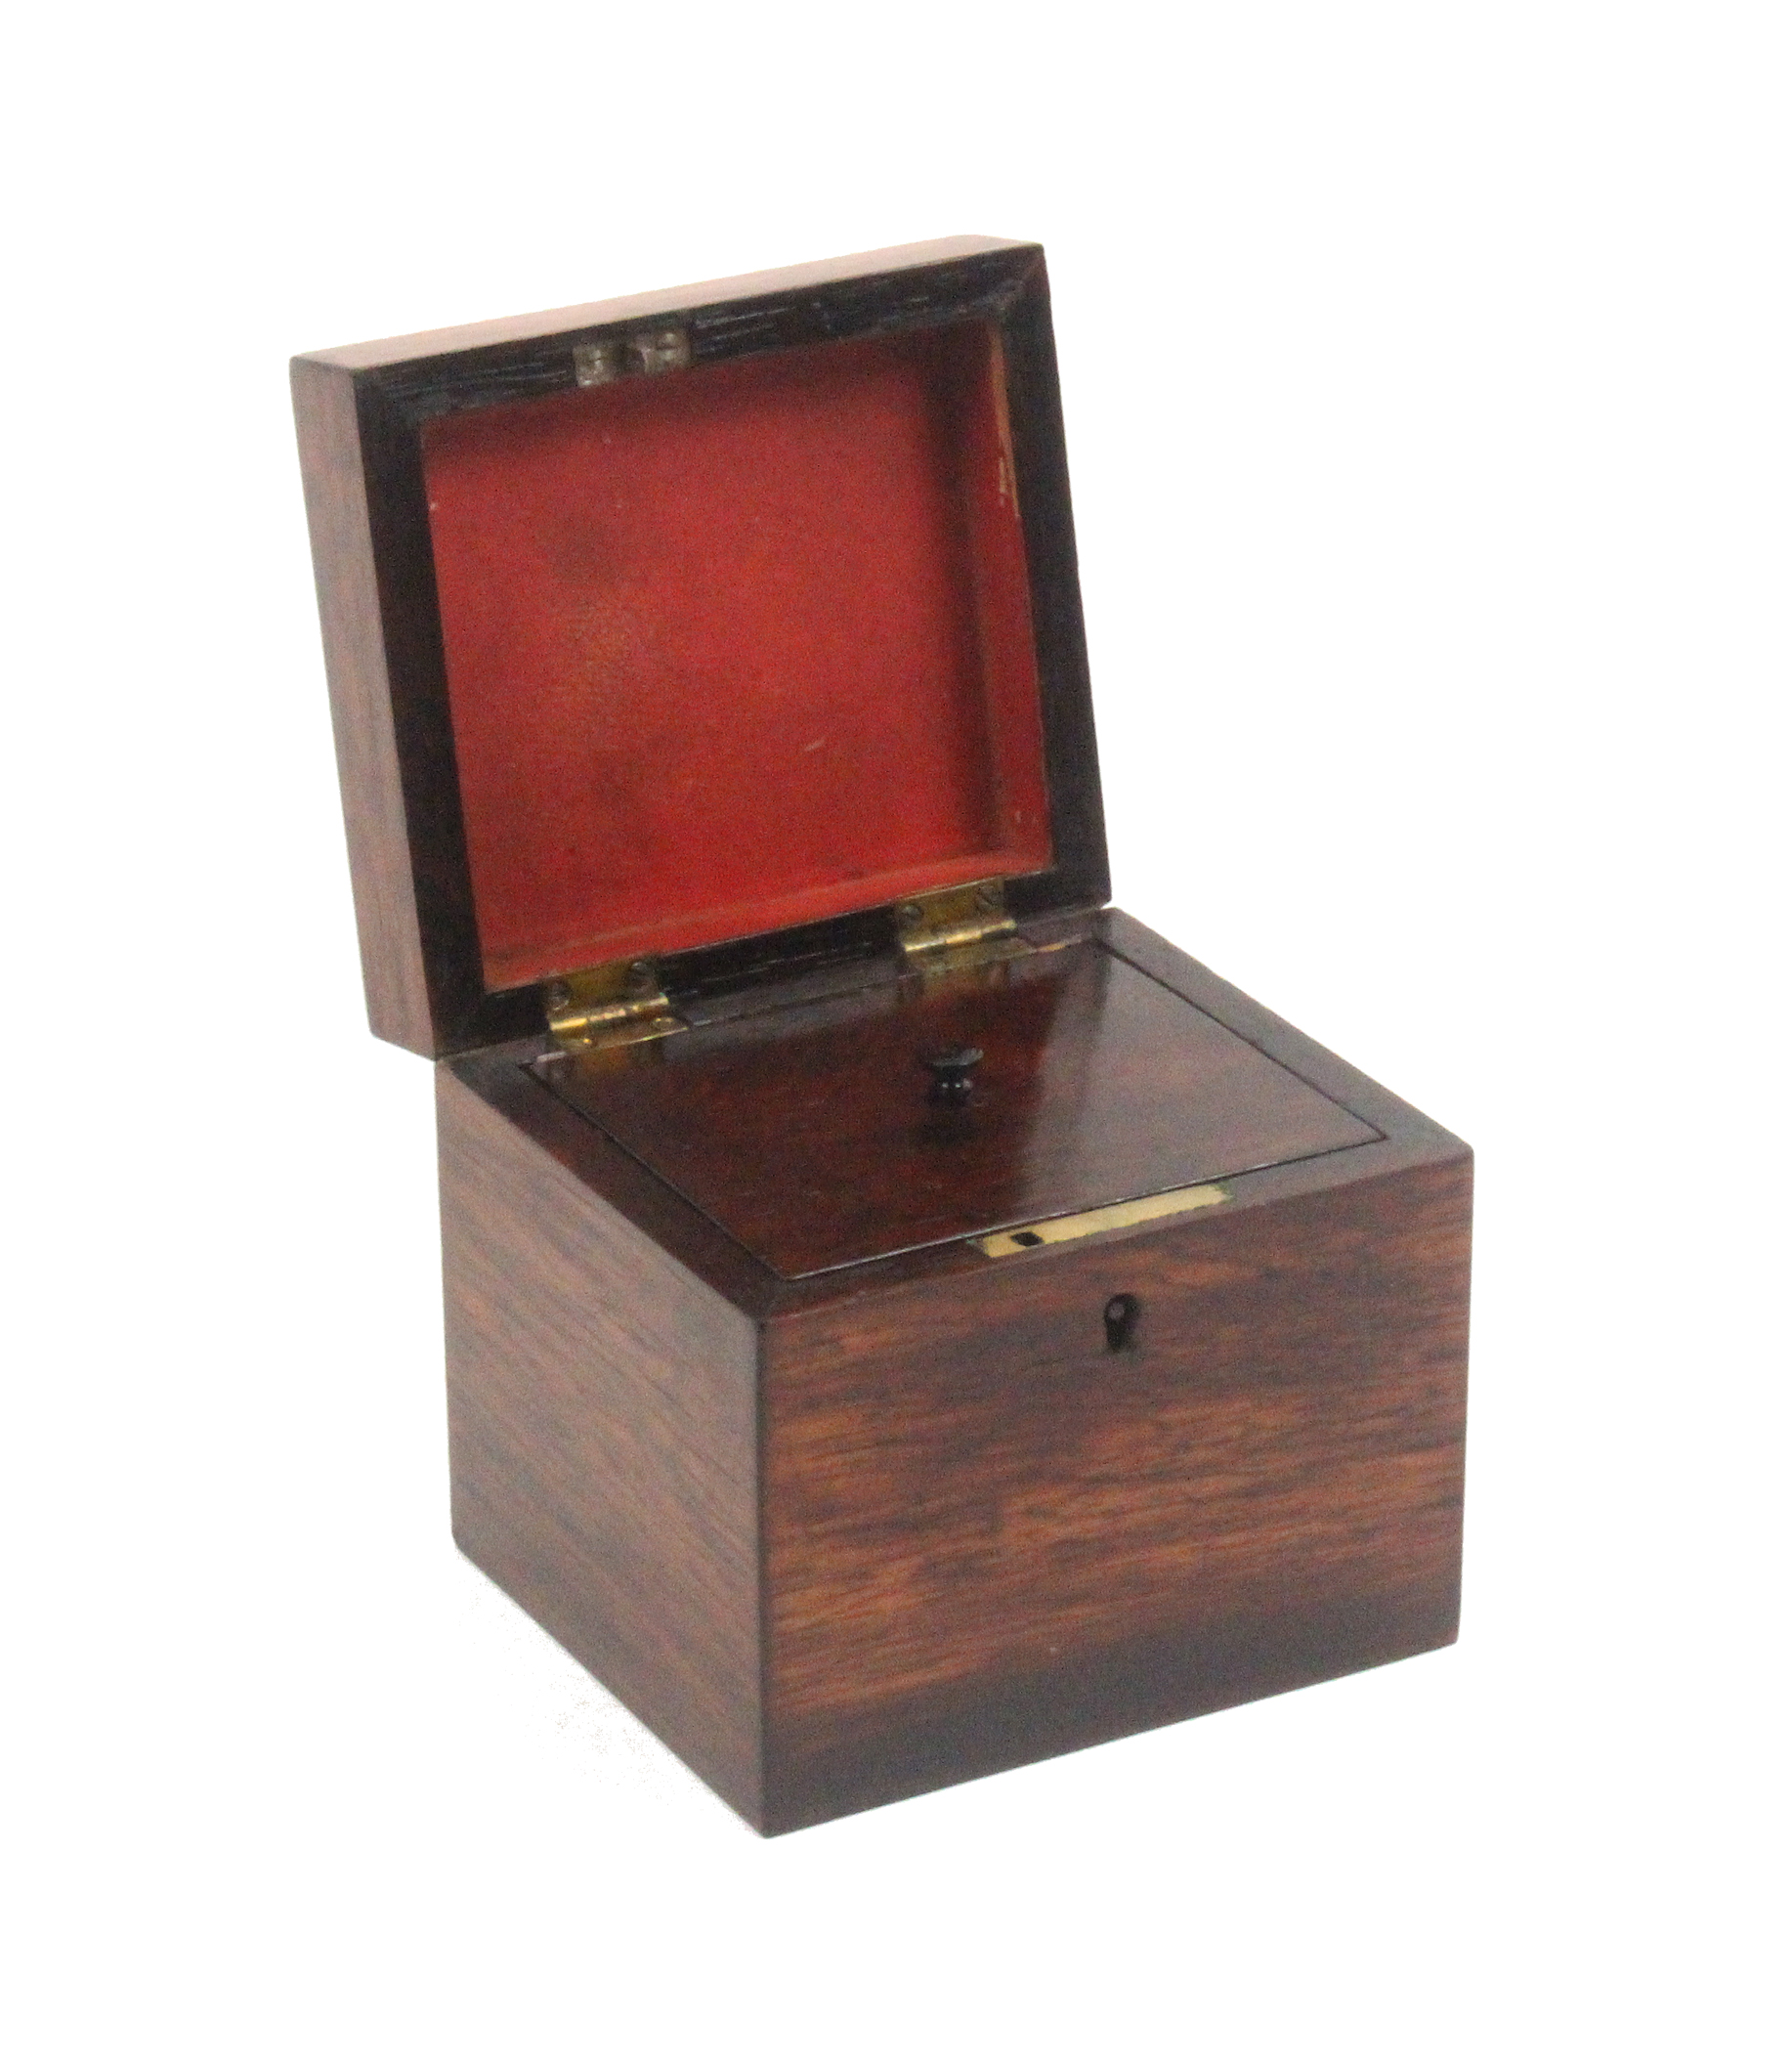 Lot 40 - A rosewood Tunbridge ware tea caddy of rectangular form, the lid with a cube work panel within